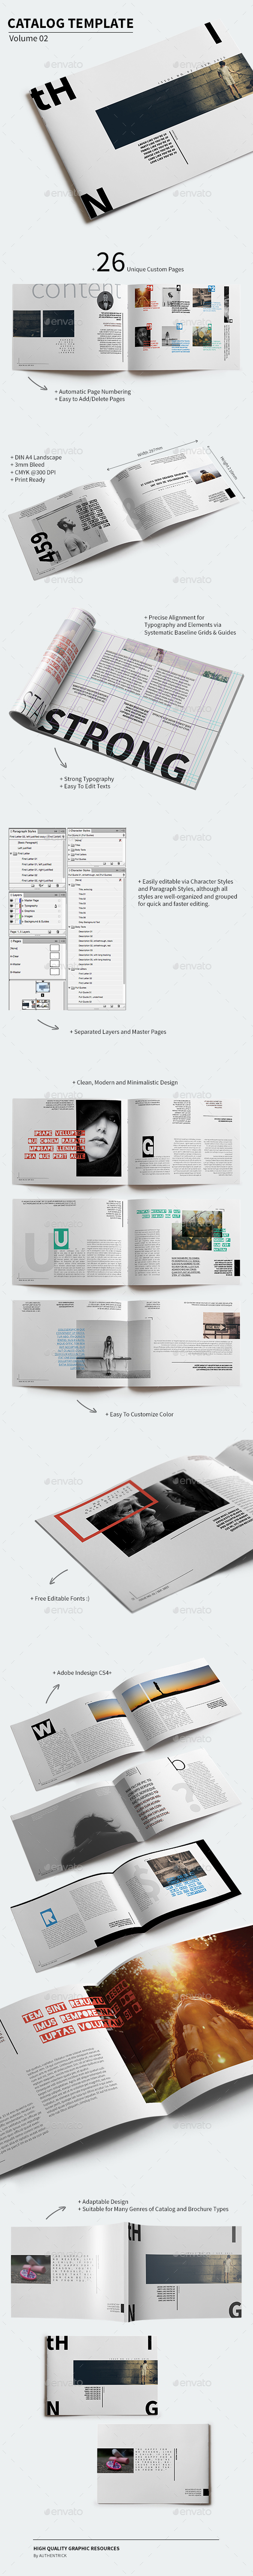 Catalog Template - Volume 02 - Catalogs Brochures